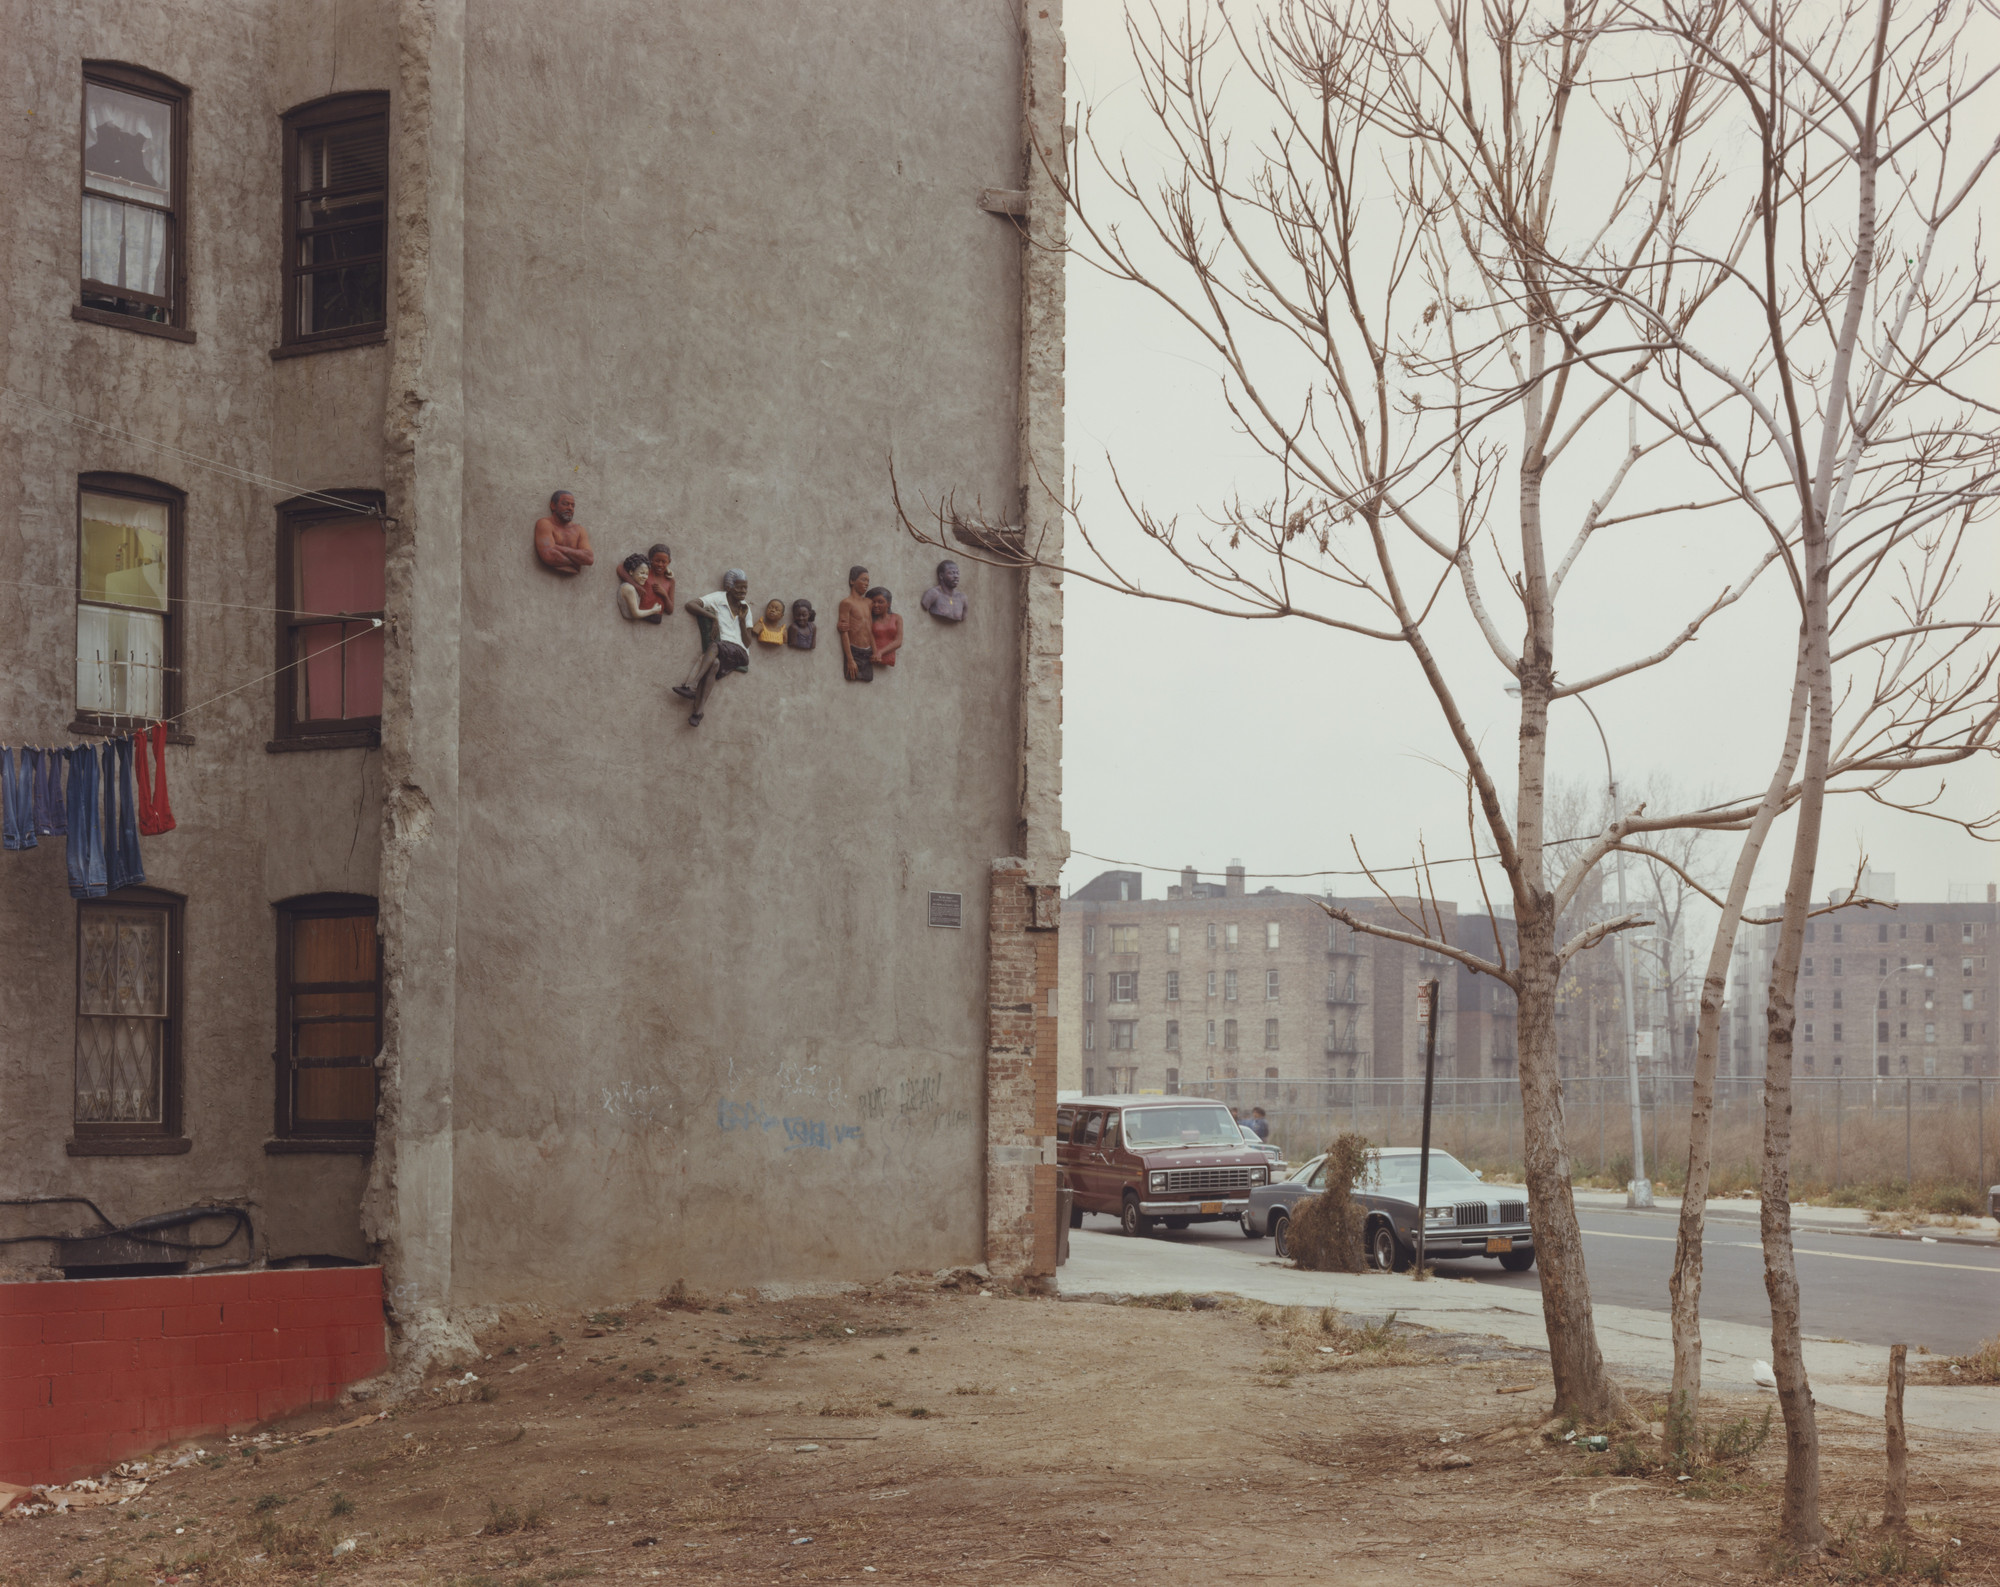 Joel Sternfeld. The Bronx, New York. November 1982